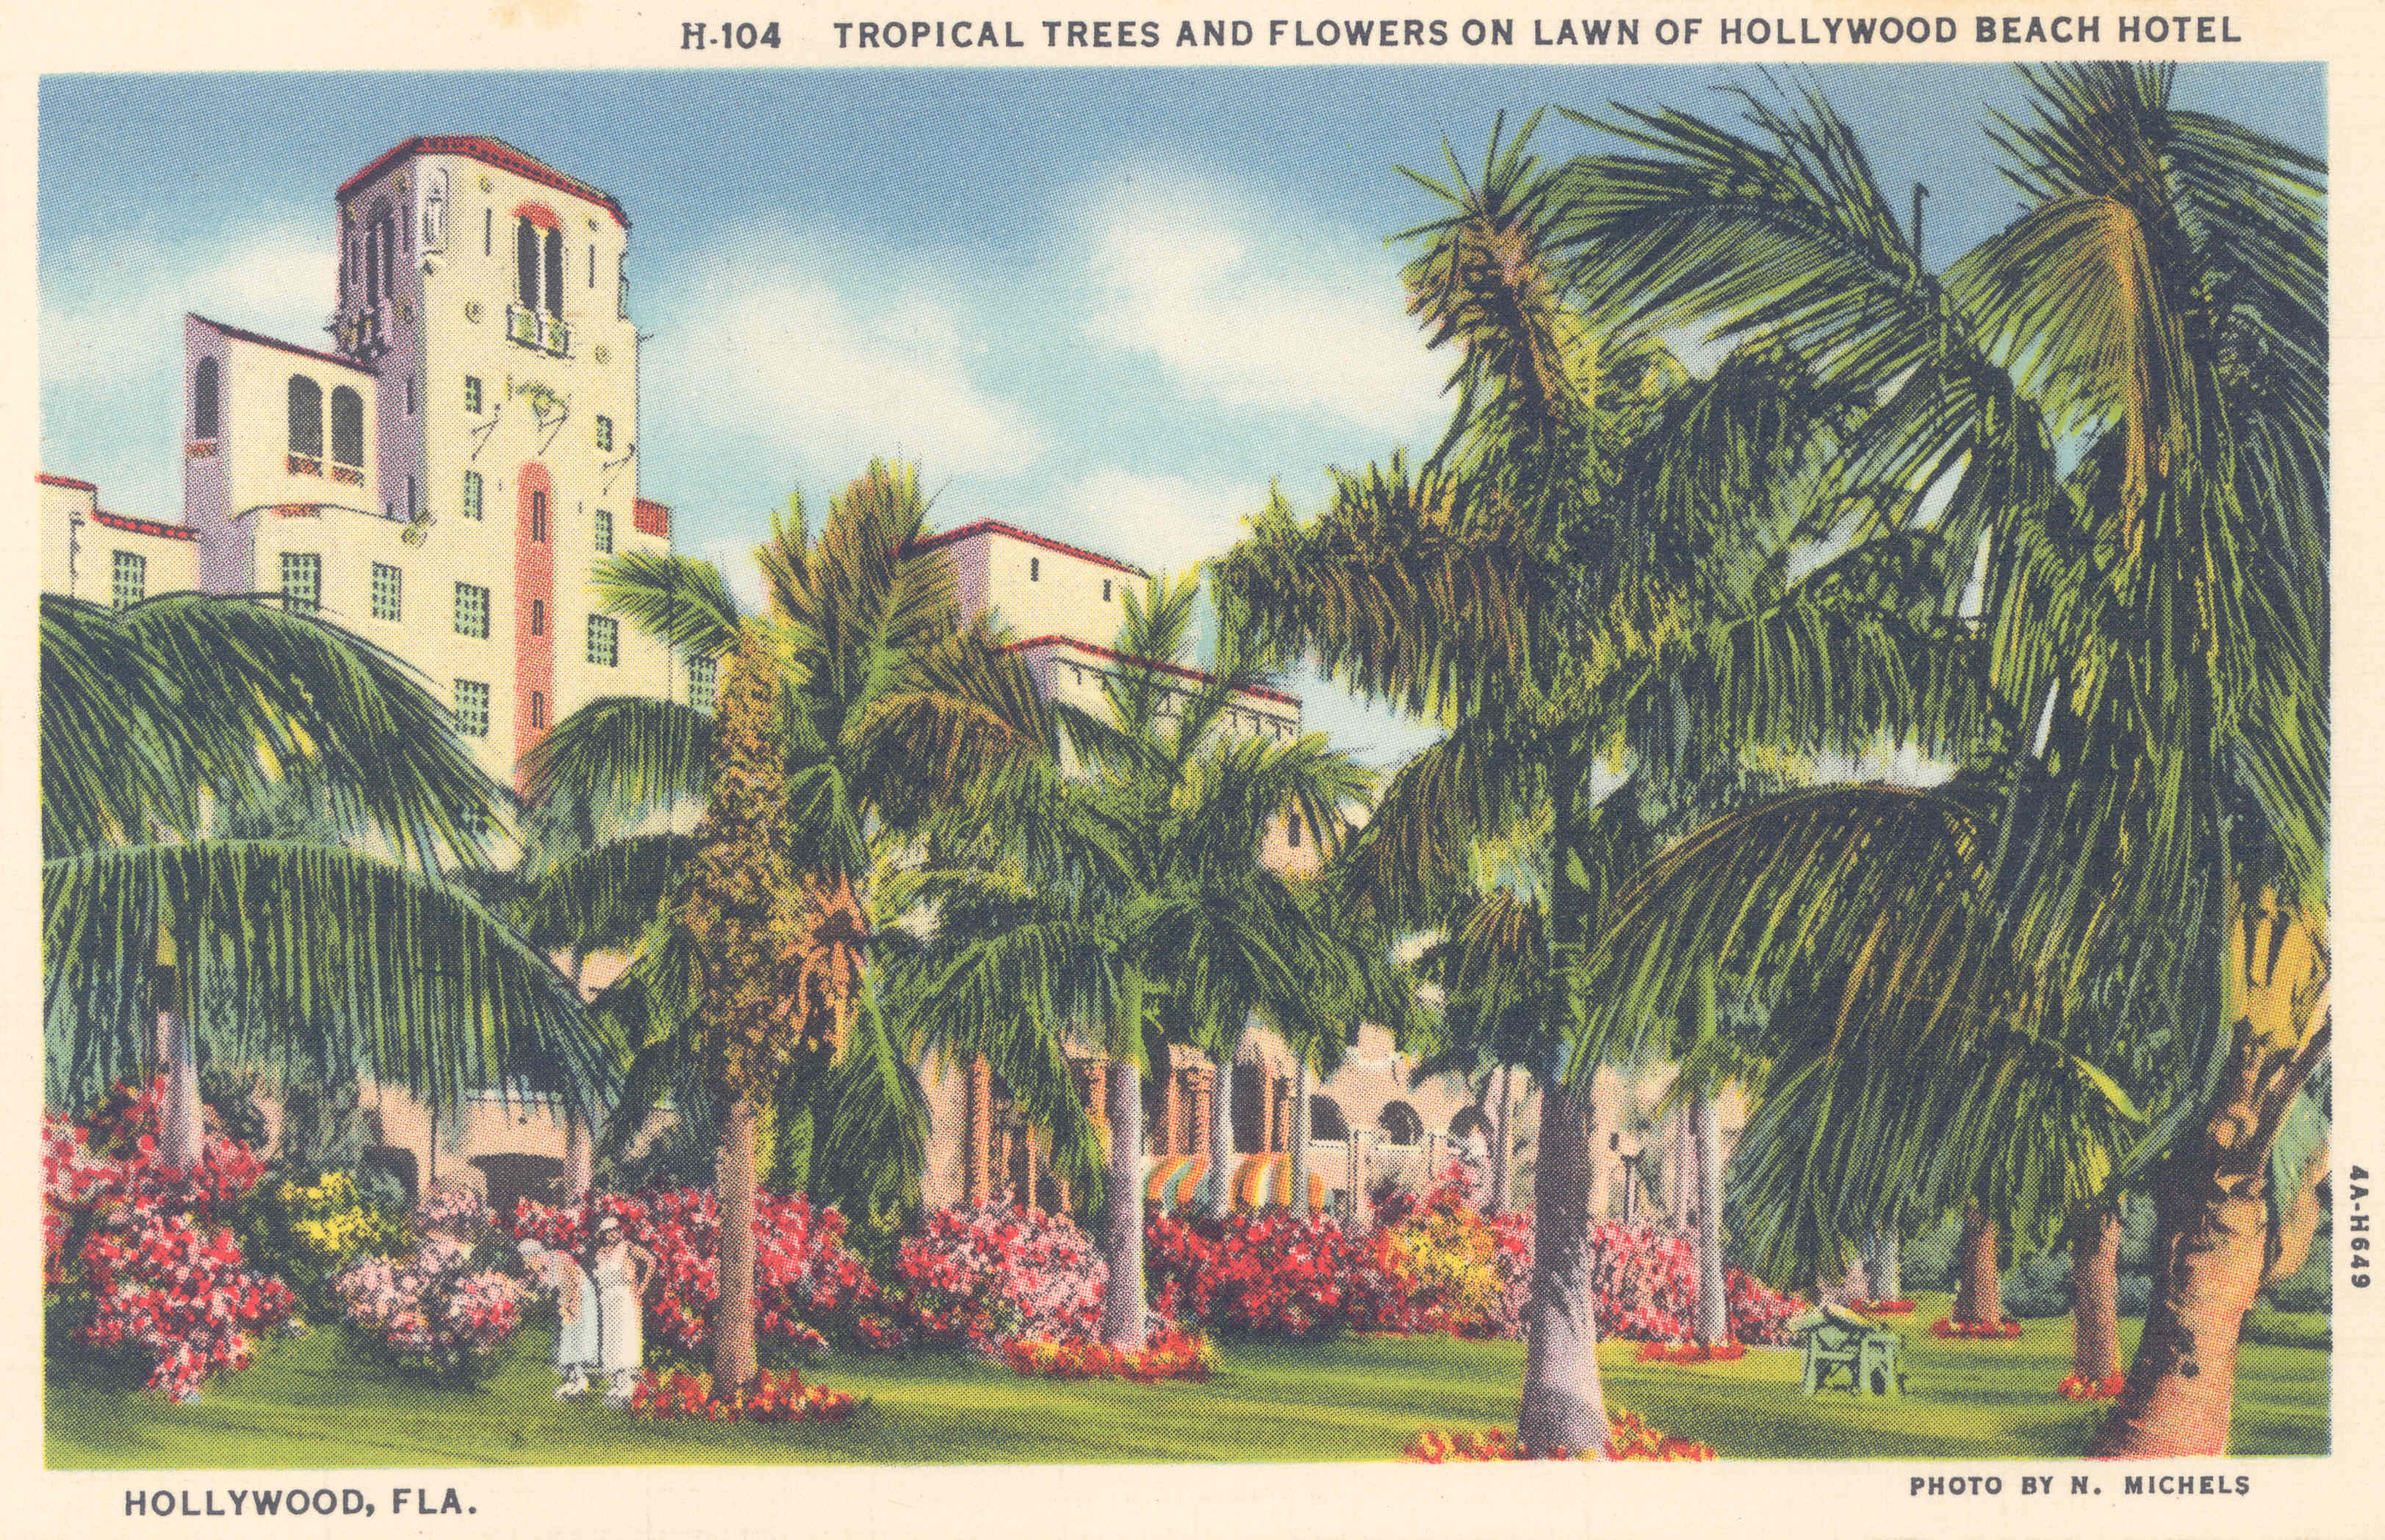 Tropical Trees & Flowers at Hollywood Beach Hotel